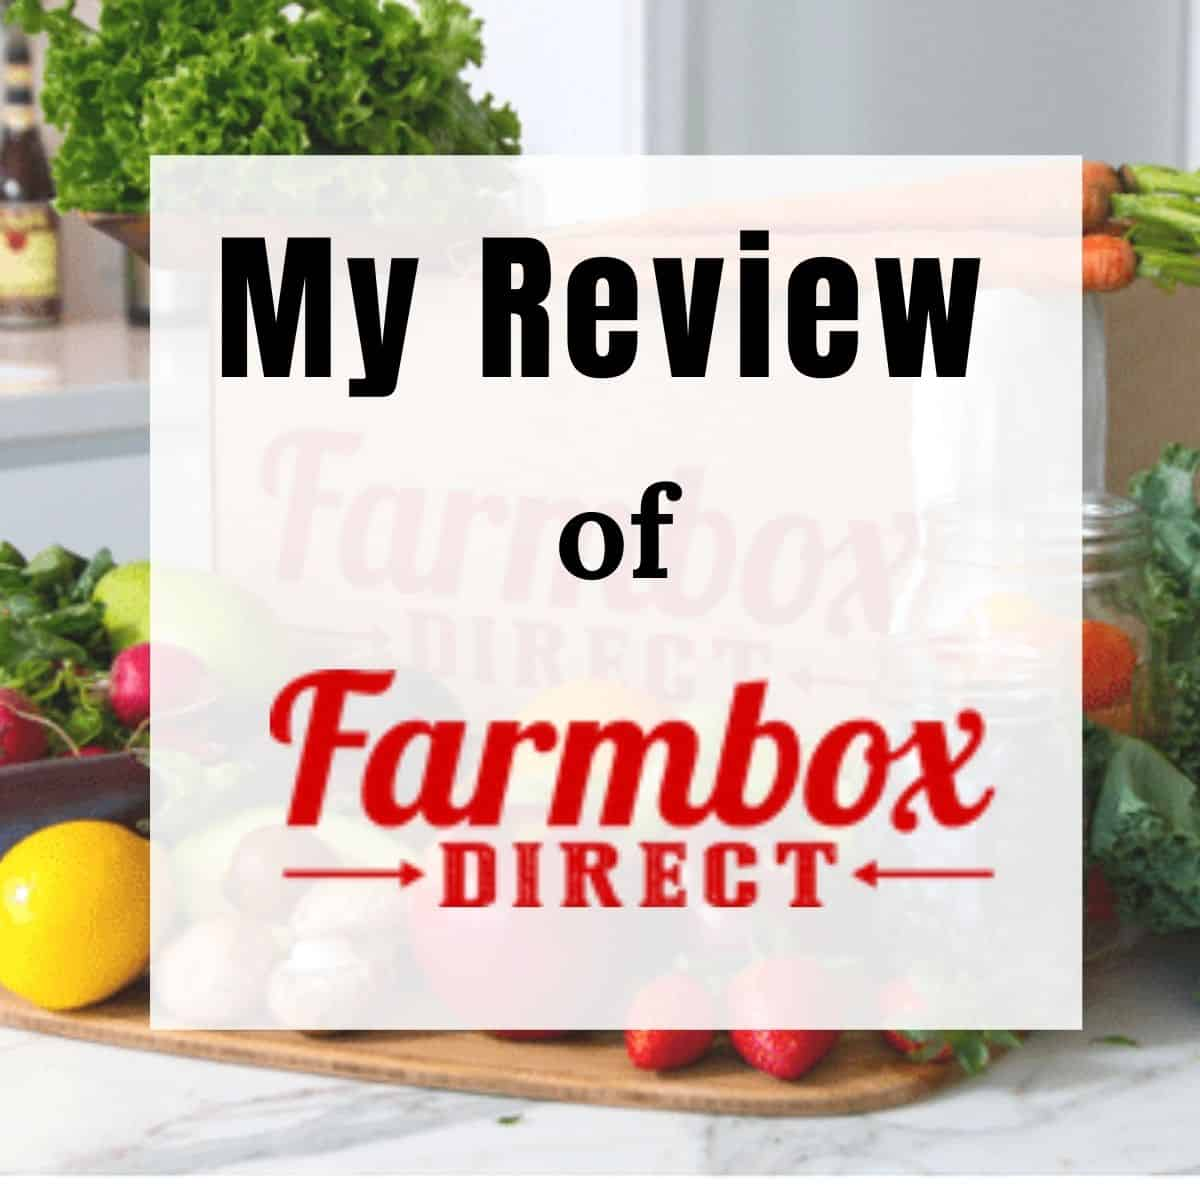 Image of farmbox direct logo and veggies and fruit behind it.